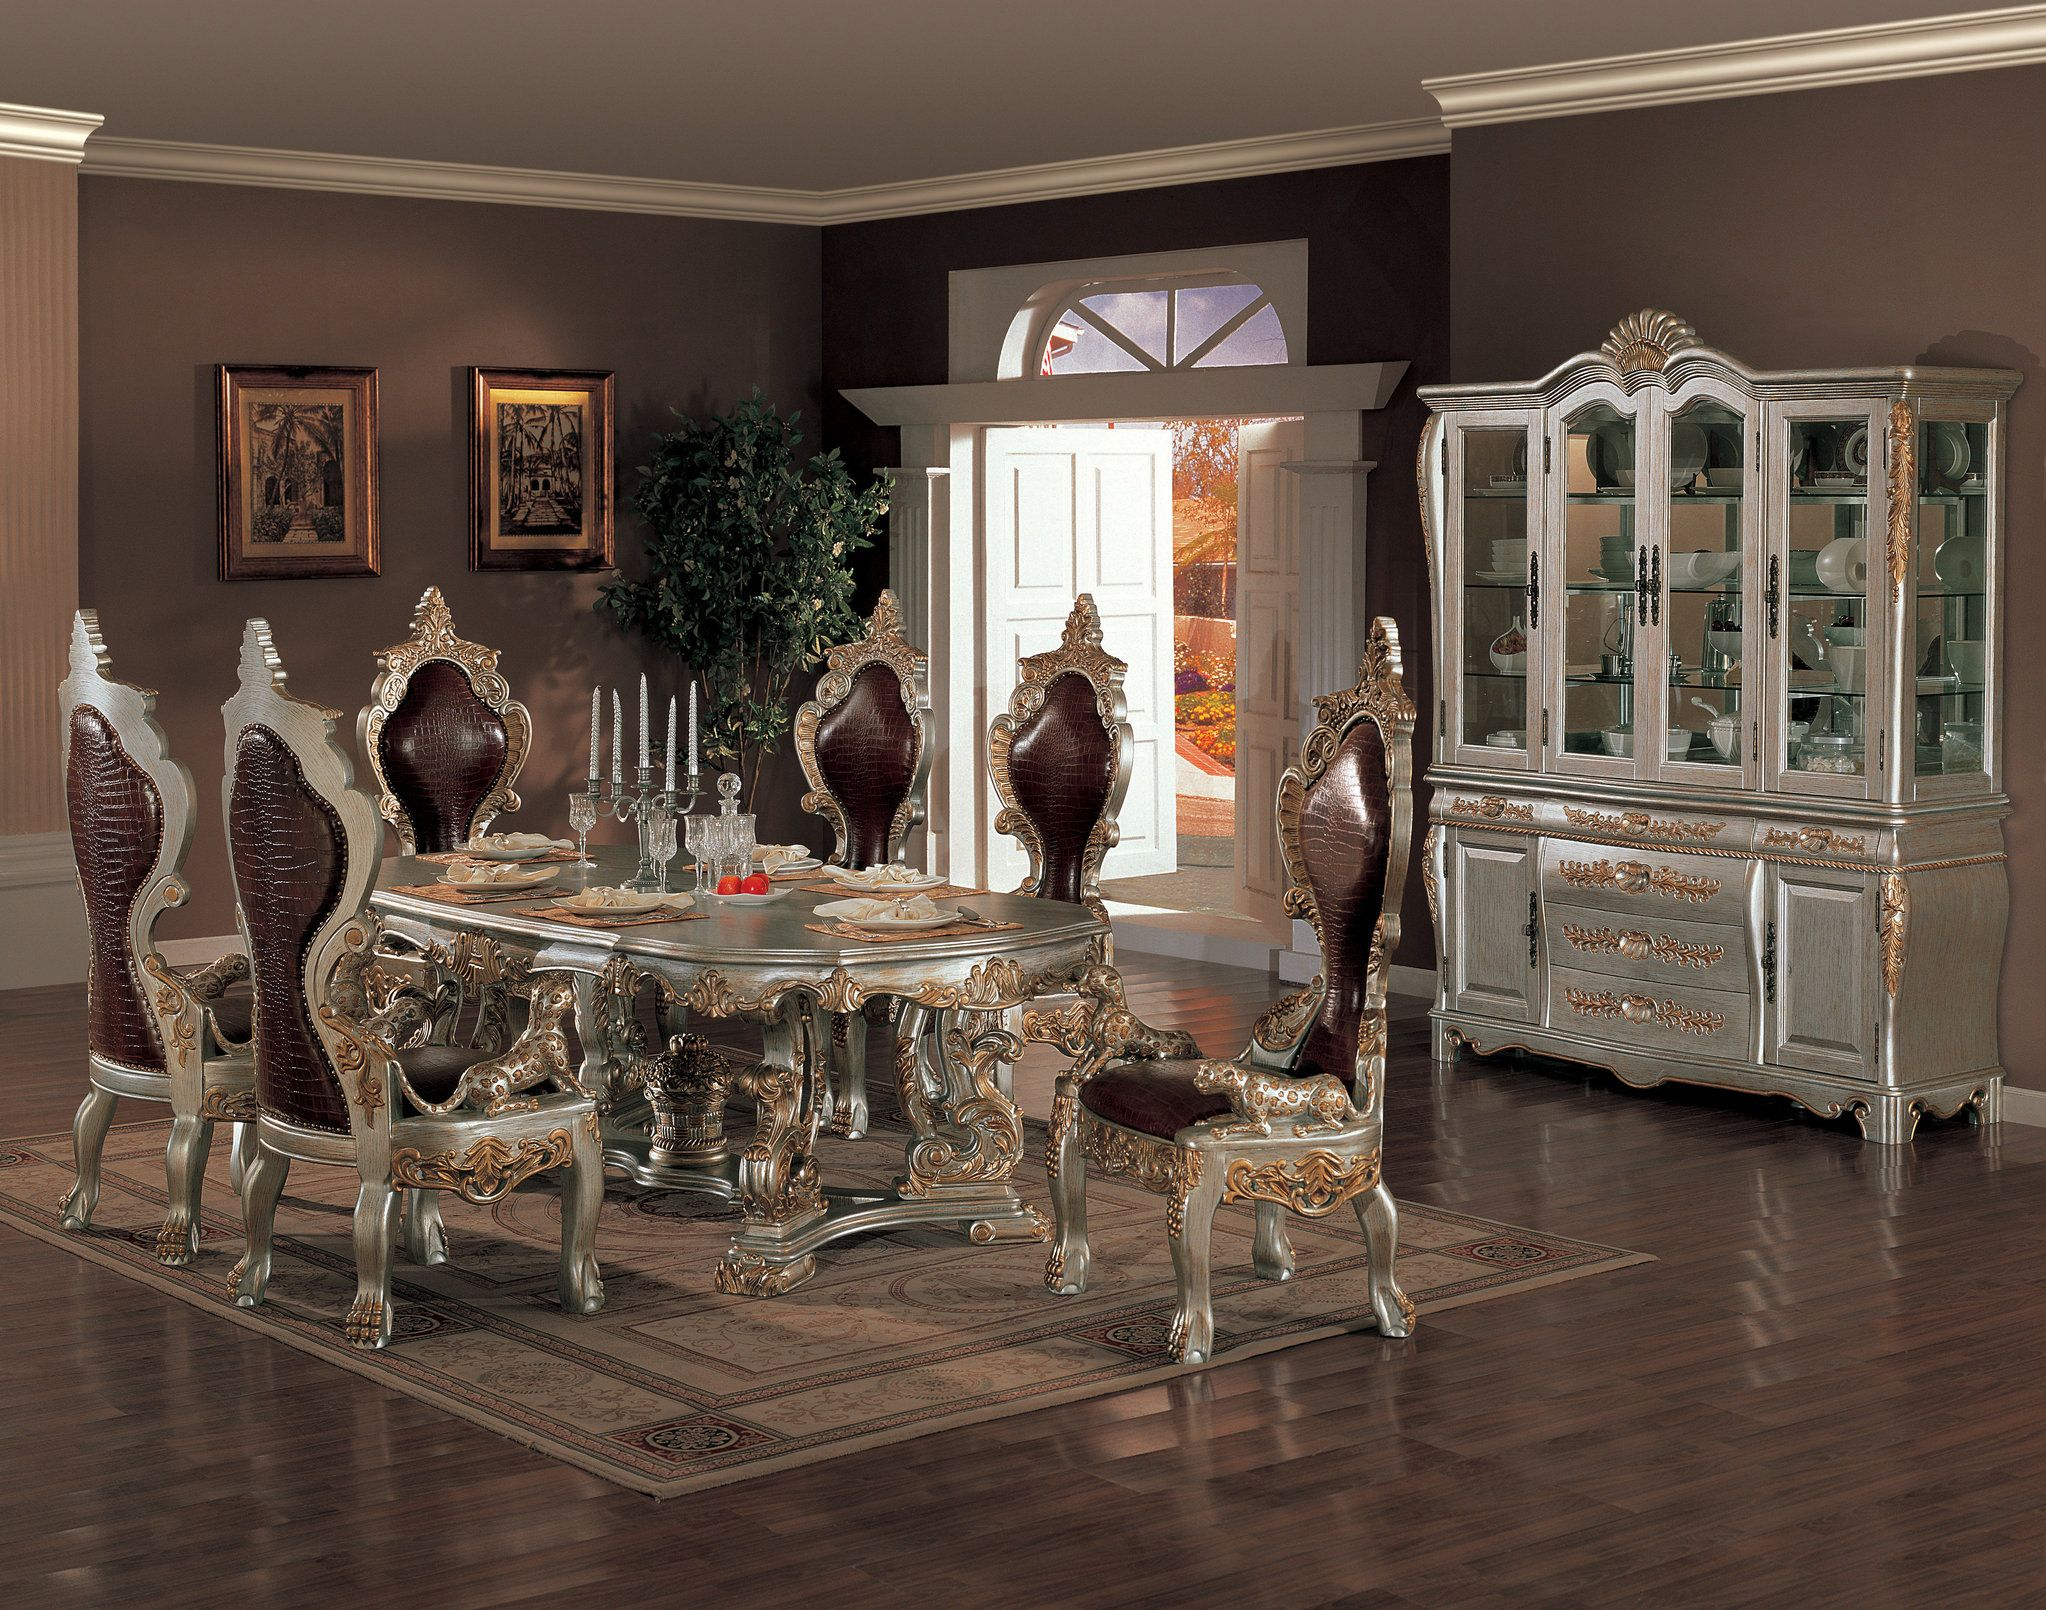 Dining Room With Buffet Table  Elegant And Ornate Wood Dining Set Gorgeous Dining Room Set With Hutch Design Ideas